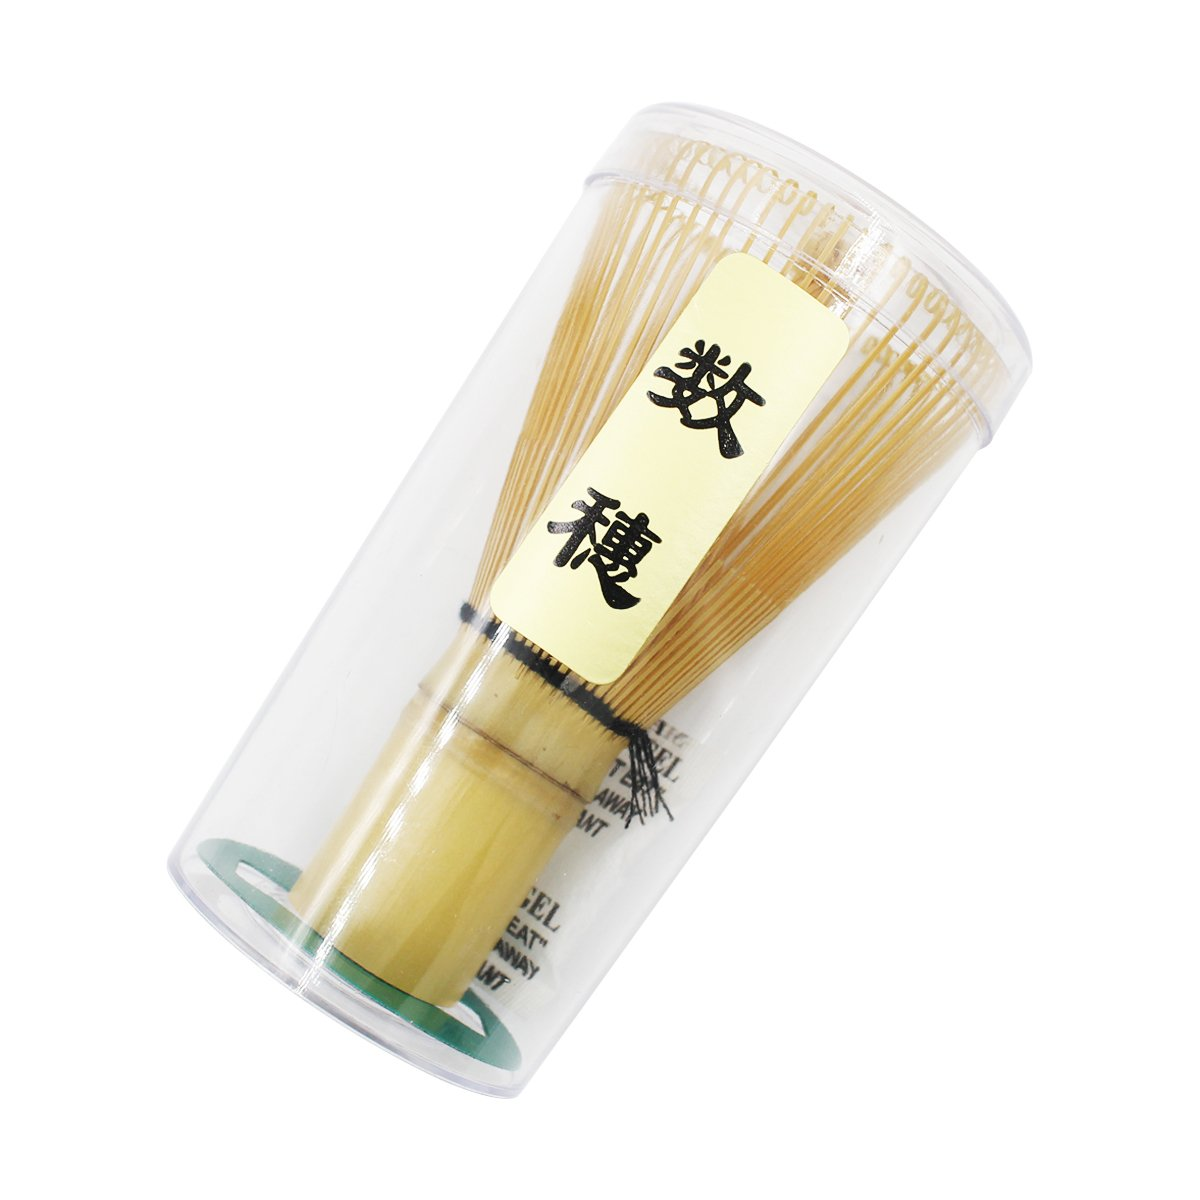 Qulable Bamboo Chasen Matcha Powder Whisk Tool Japanese Tea Ceremony Accessory (60-70 prongs)